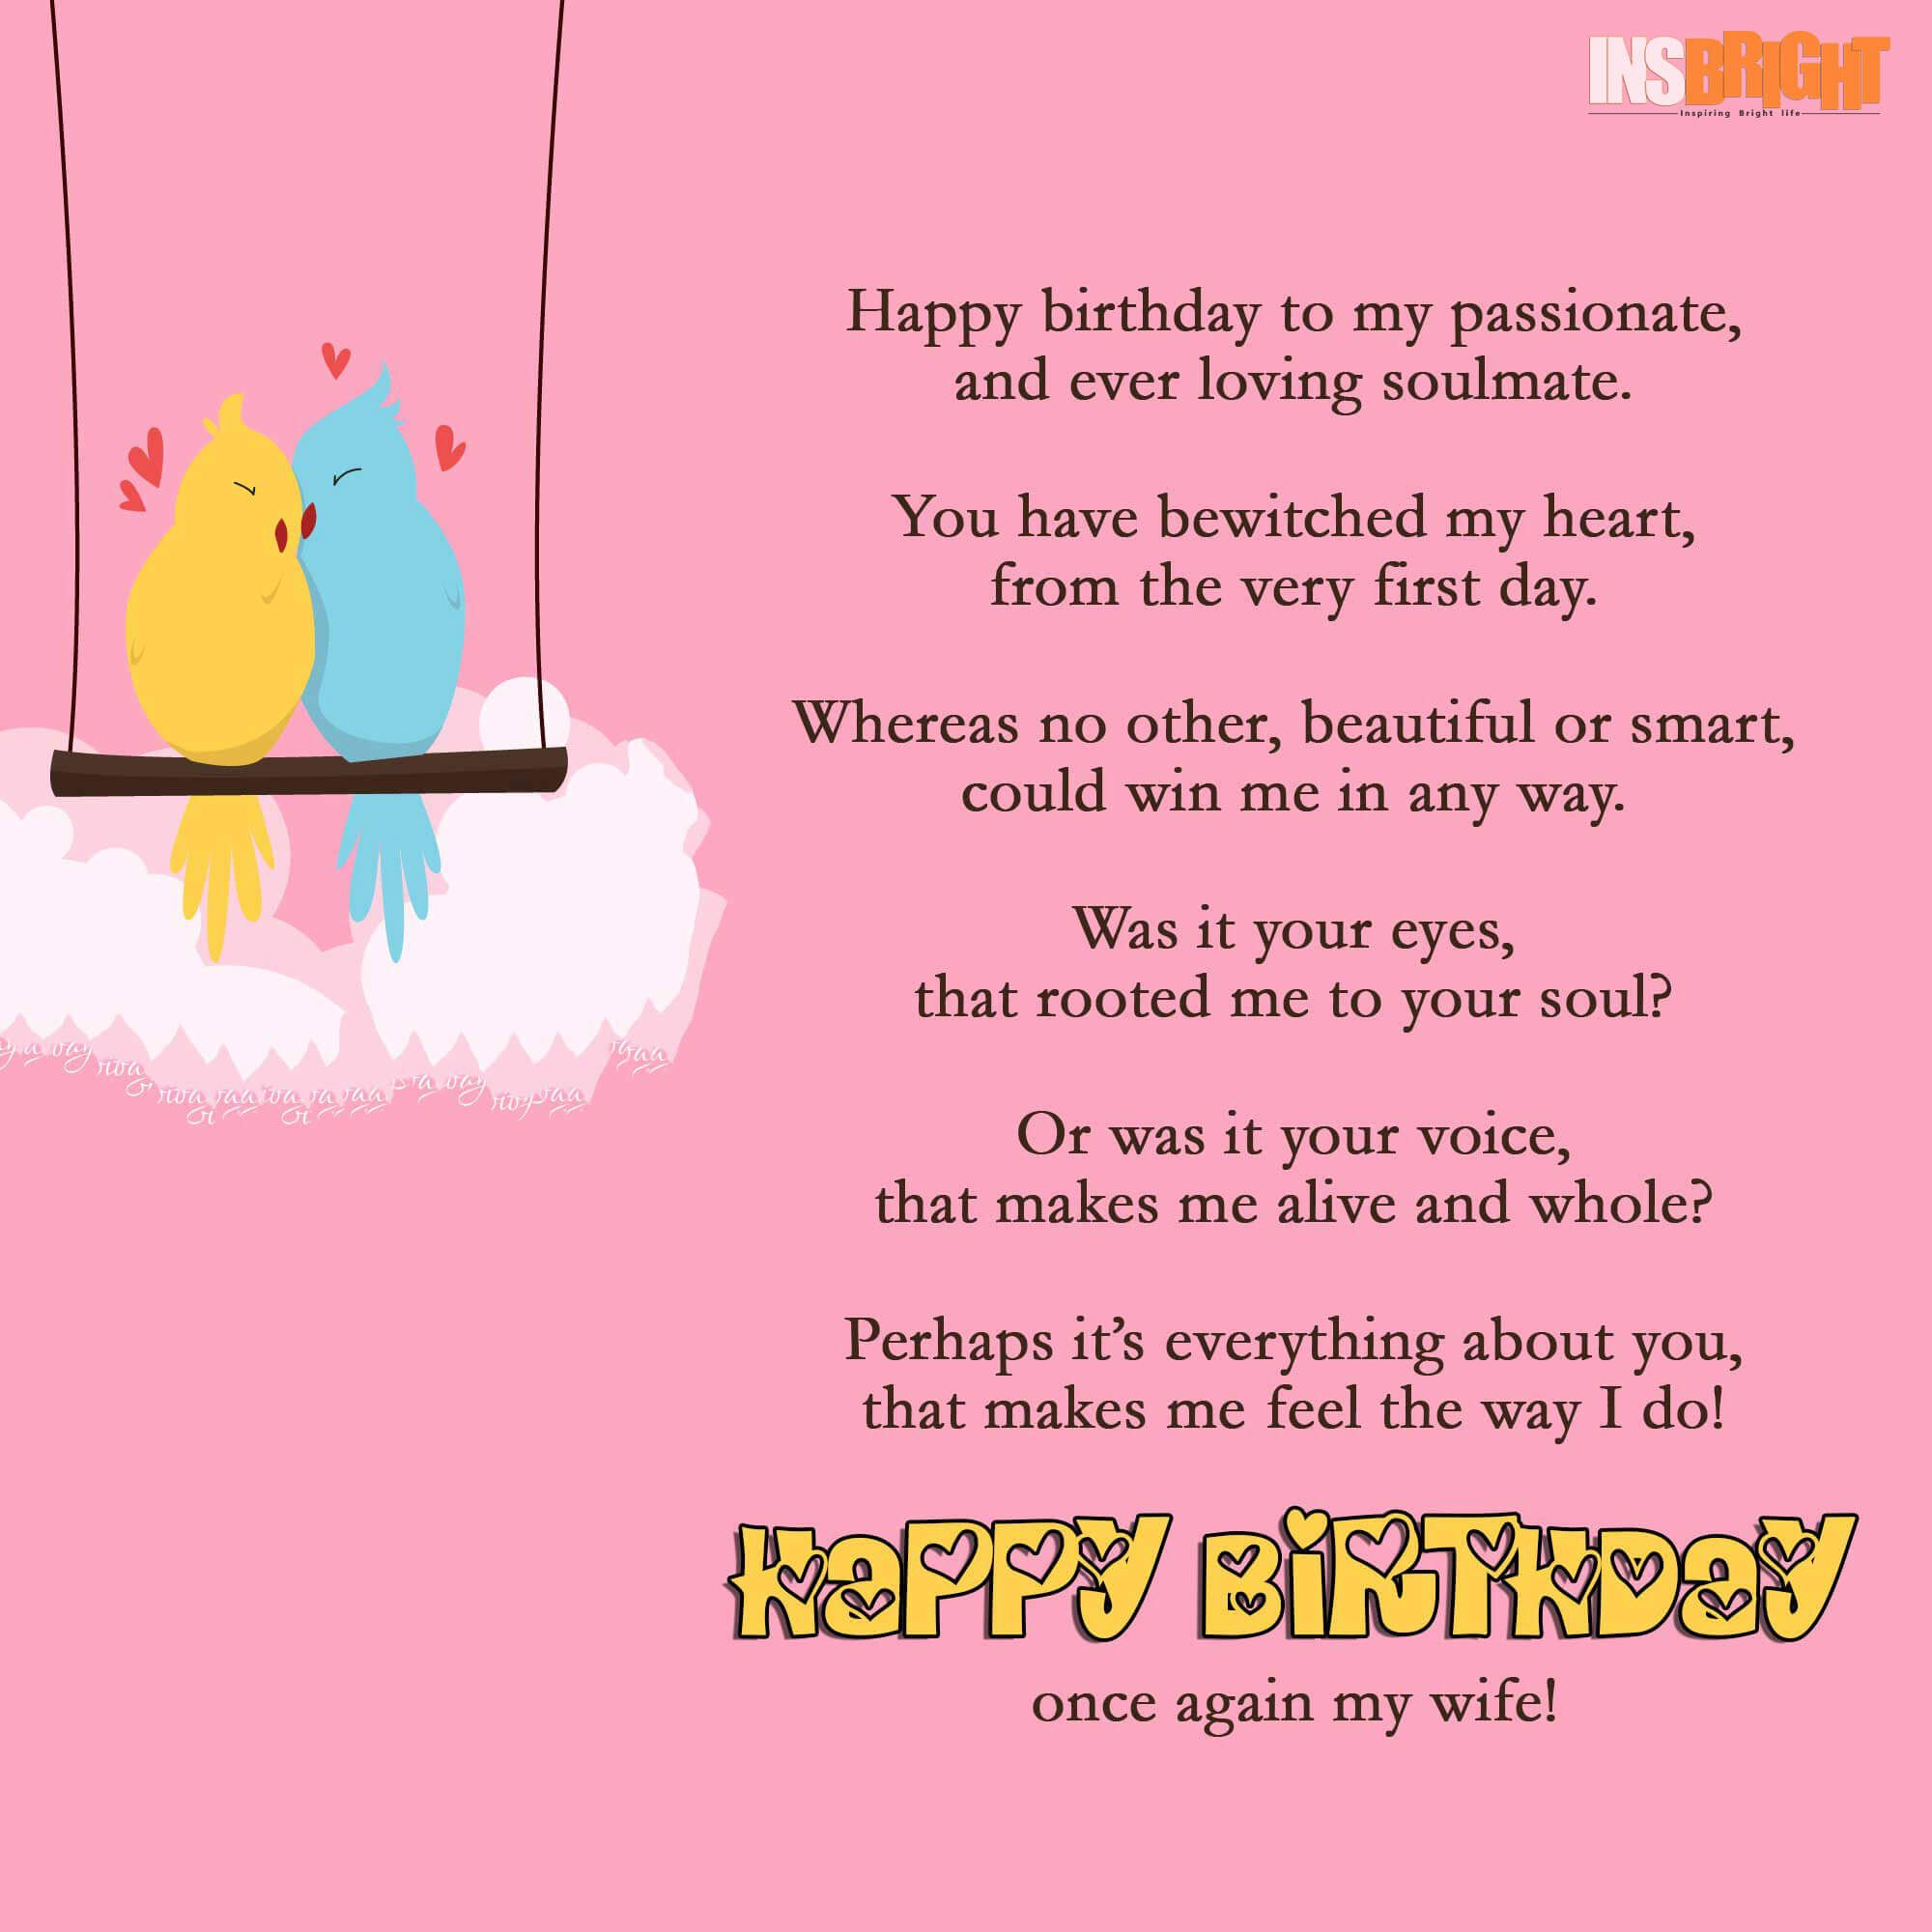 Happy Birthday To My Beloved Who Is The Reason Behind My Smile You Are More Precious Than A Diam Birthday Poems Short Birthday Poems Birthday Wishes For Wife